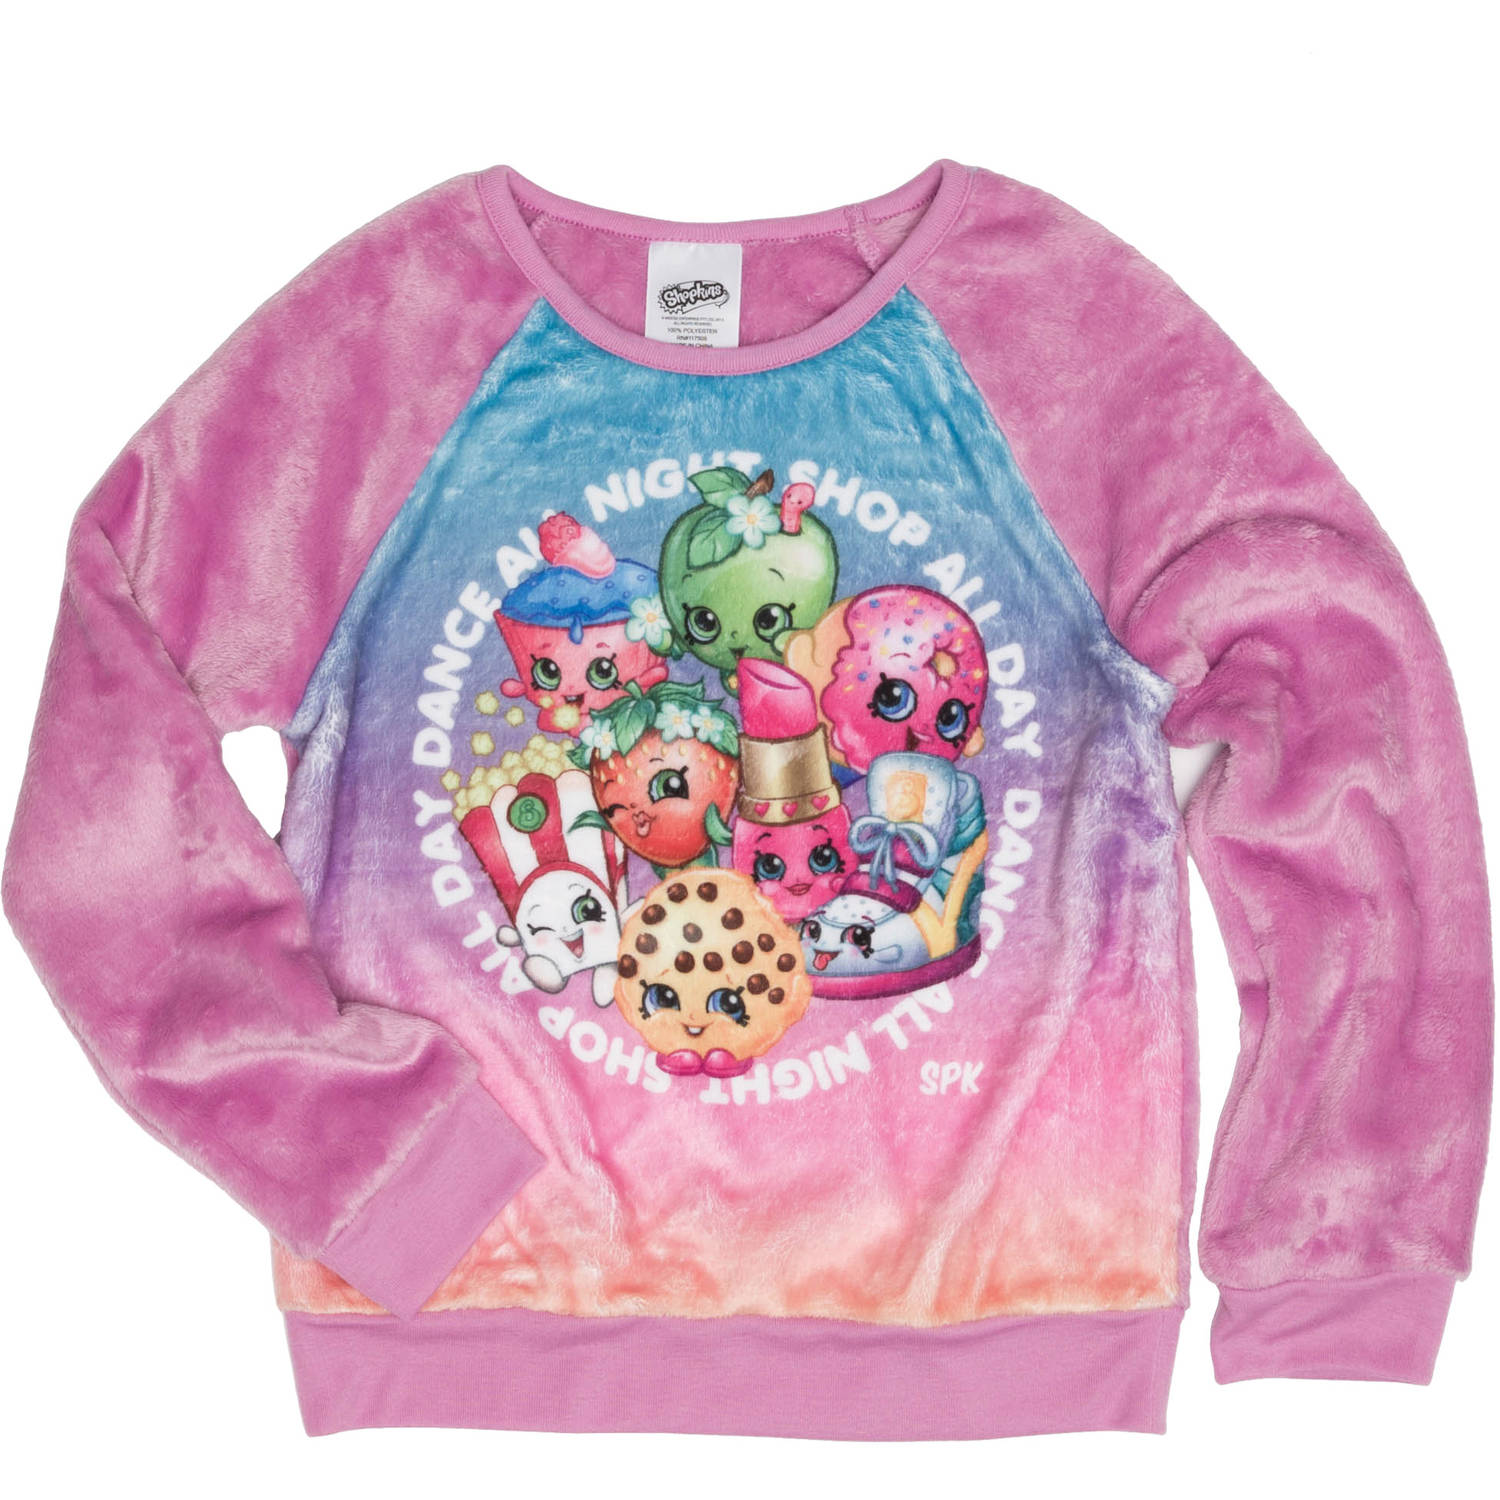 Shopkins Girls' All Day All Night Long Sleeve Crew Neck Sweatshirt